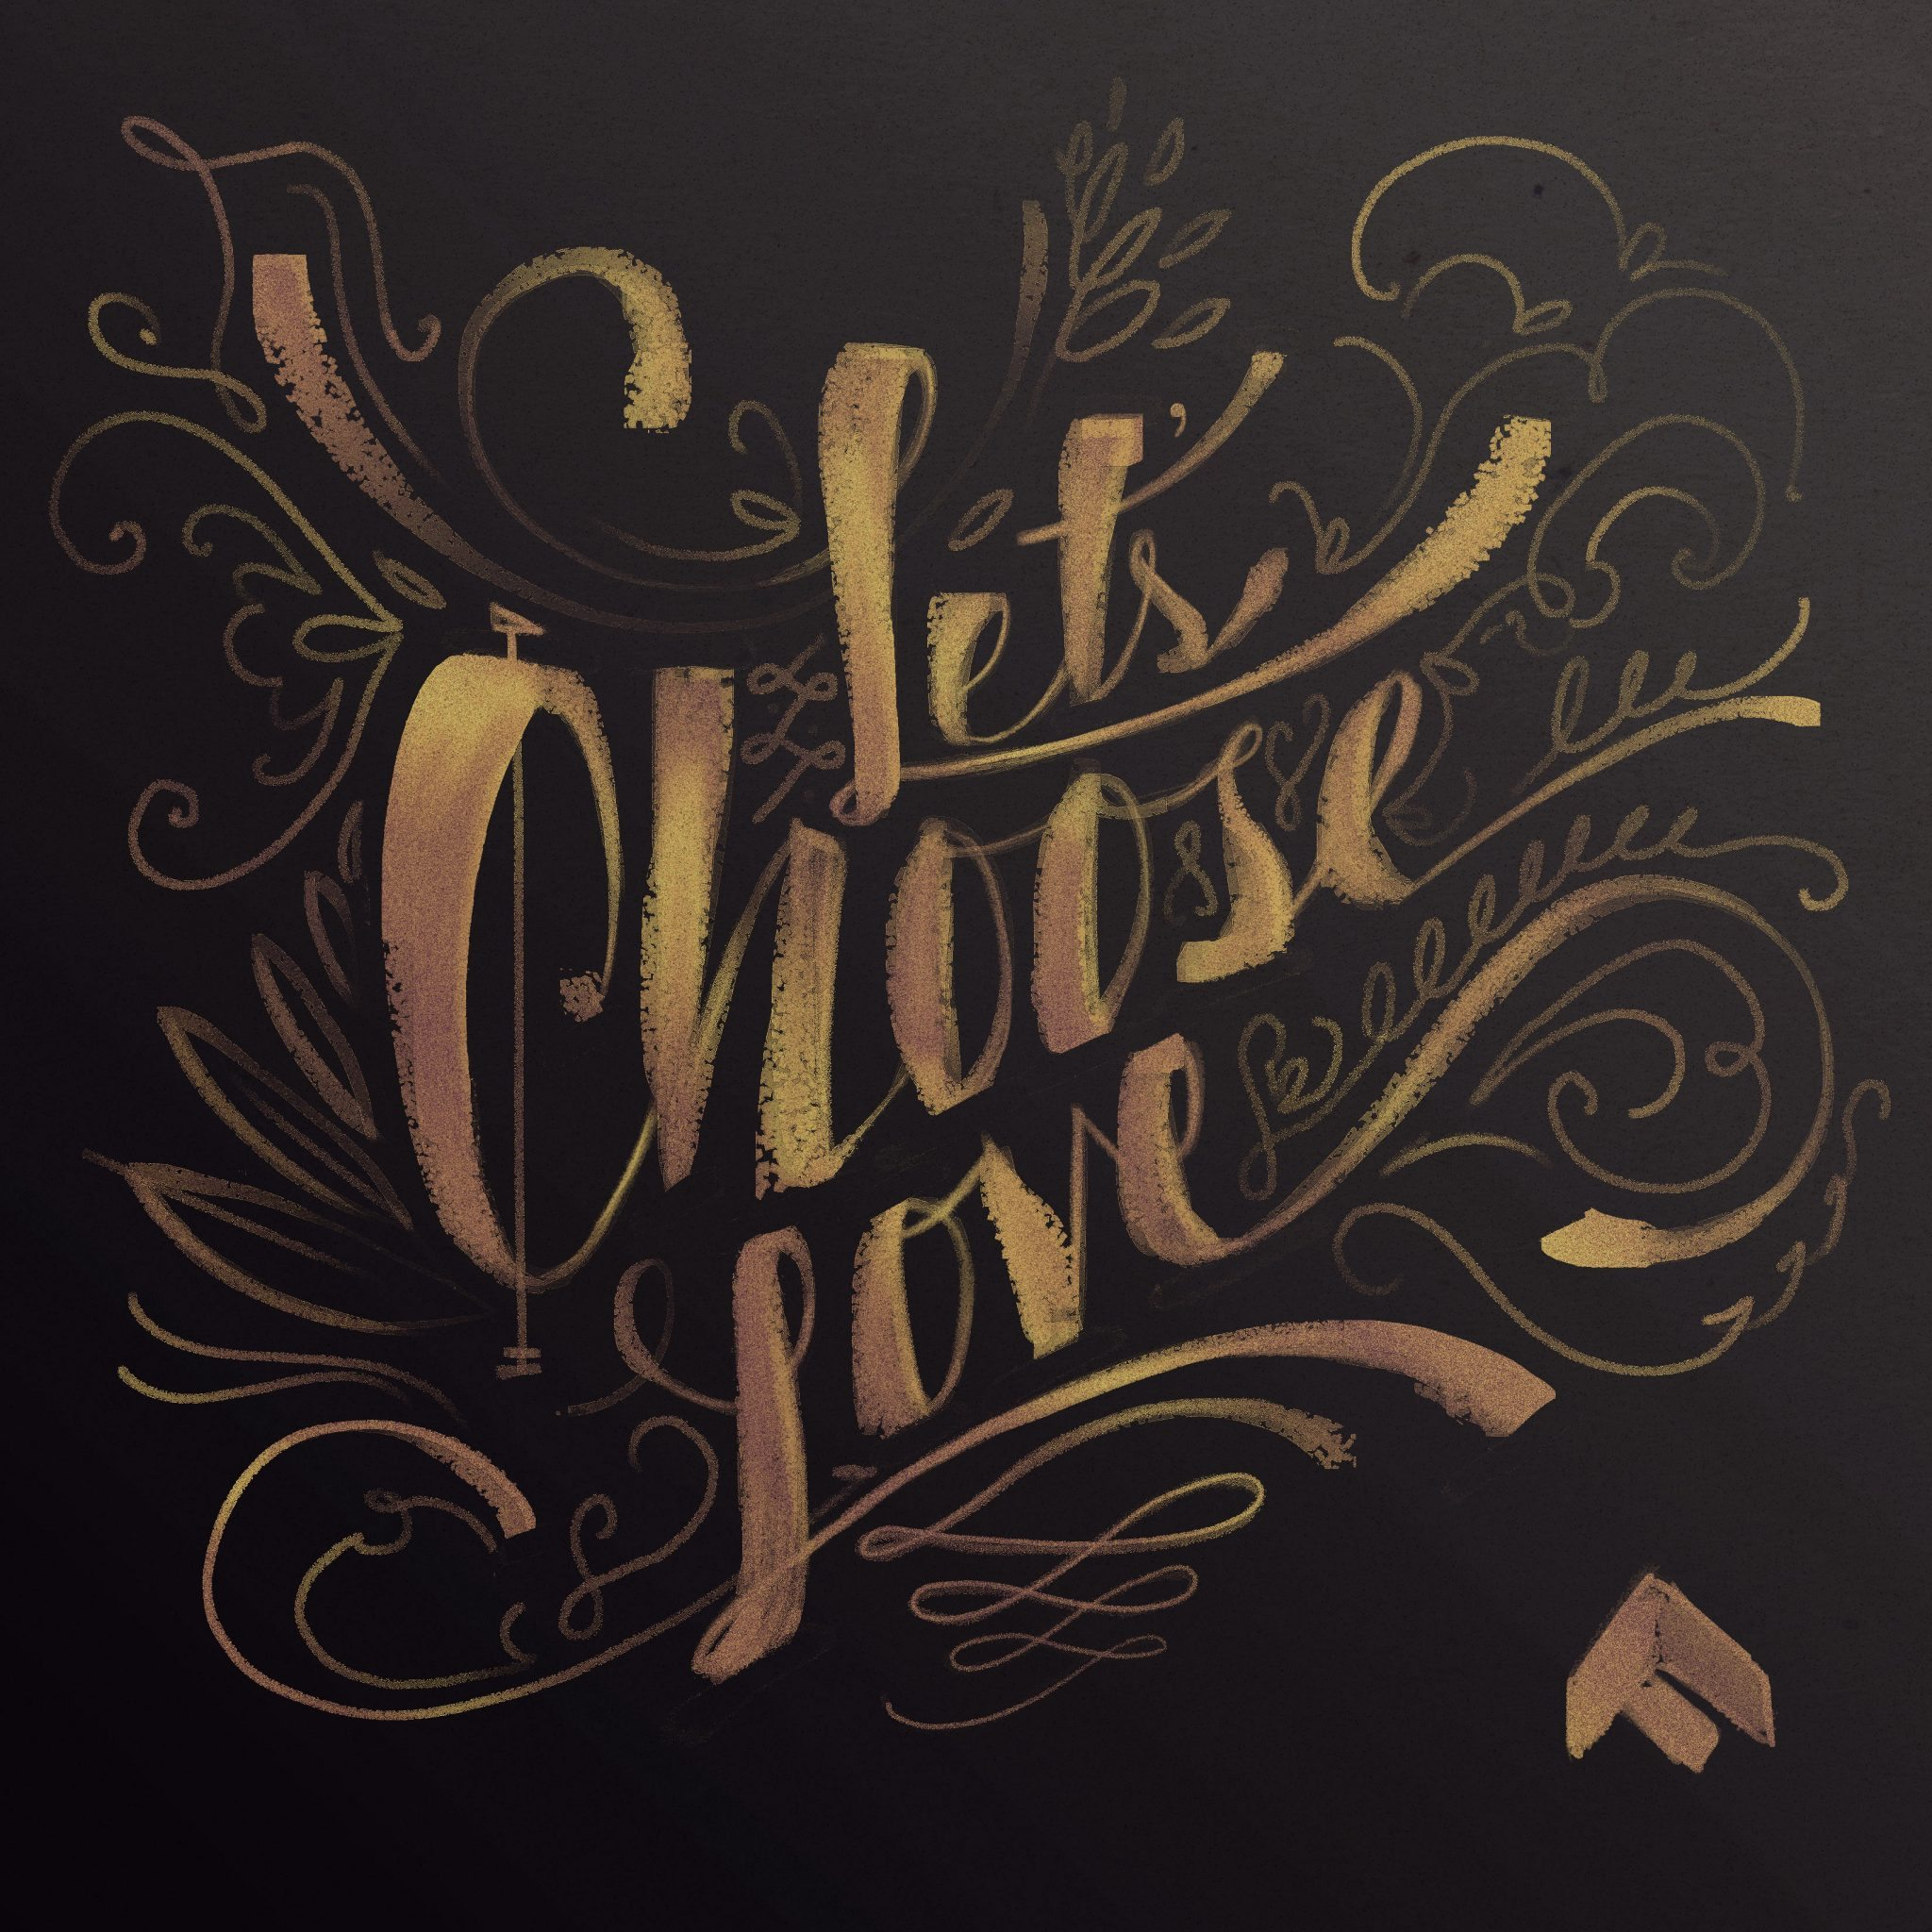 Let's_choose_Love